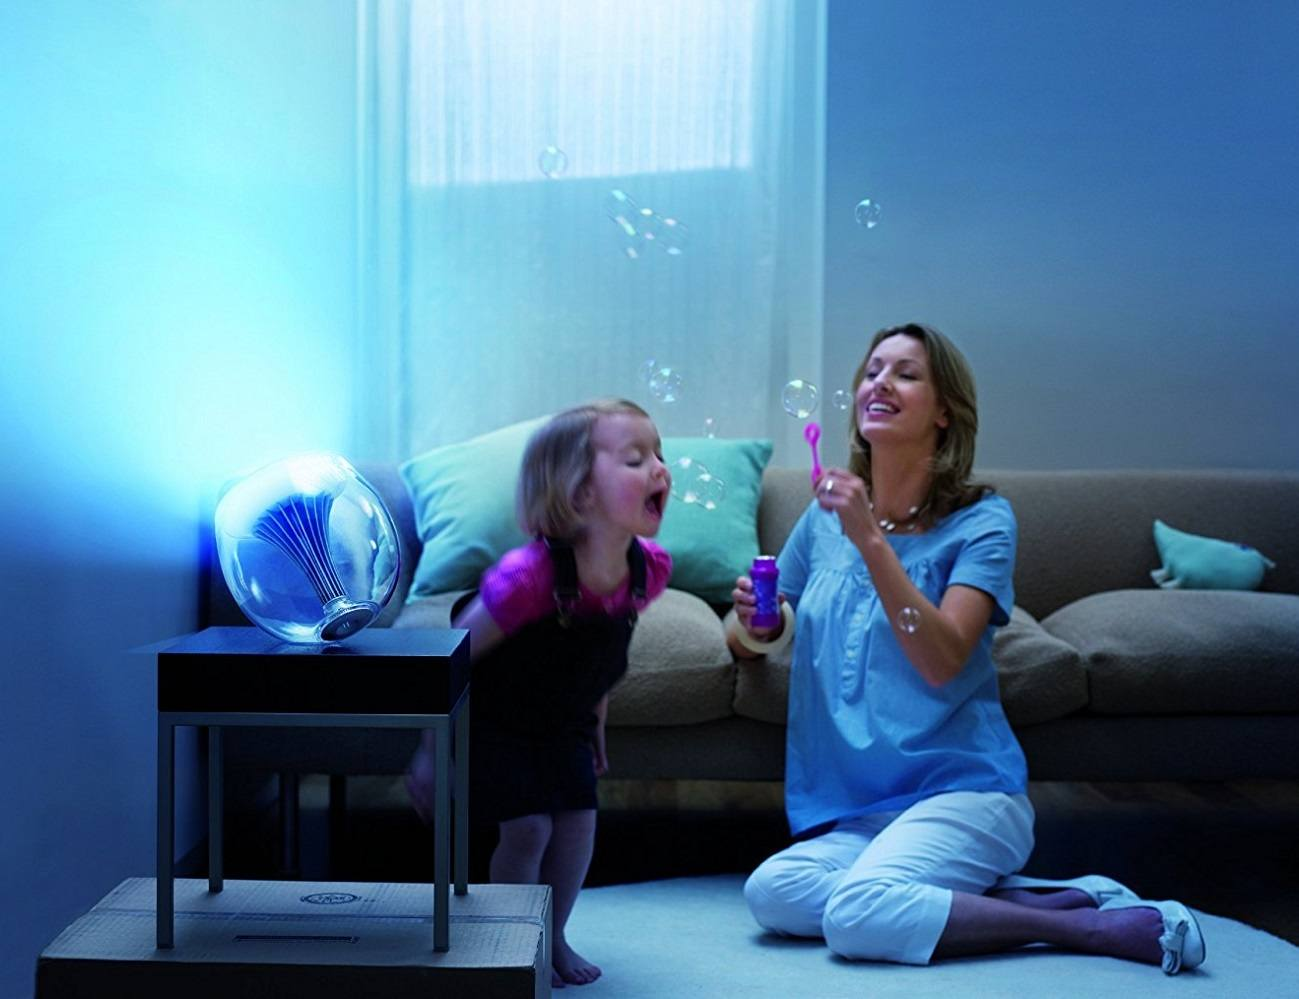 Philips LivingColors Translucent Changing LED Lamp